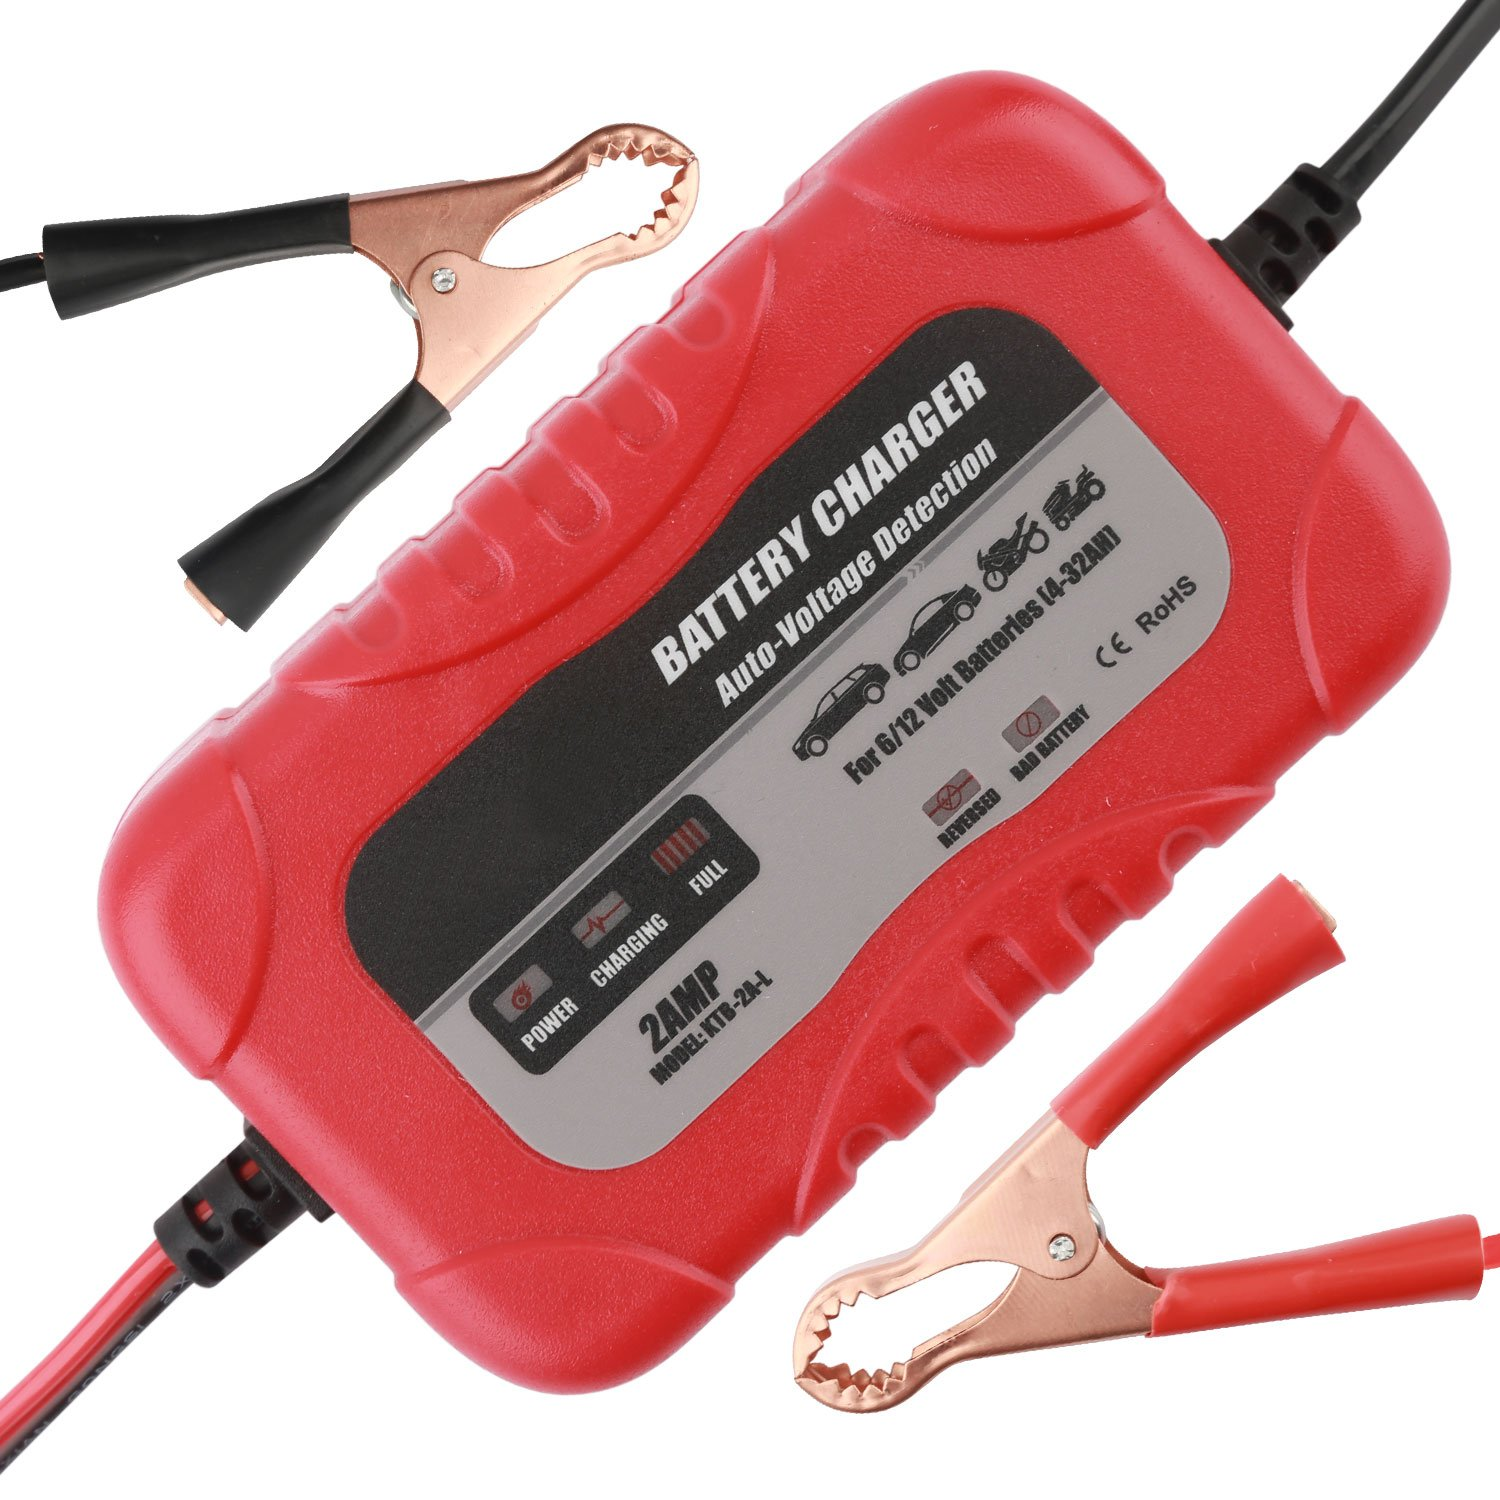 Automotive Car Battery Charger Trickle Charger,Battery Charger Automotive Maintainer 6V 12V Automotive Battery Charger 2Amp for Car Battery Motorcycle Lawn Mower Marine Scooter Lead Acid Battery